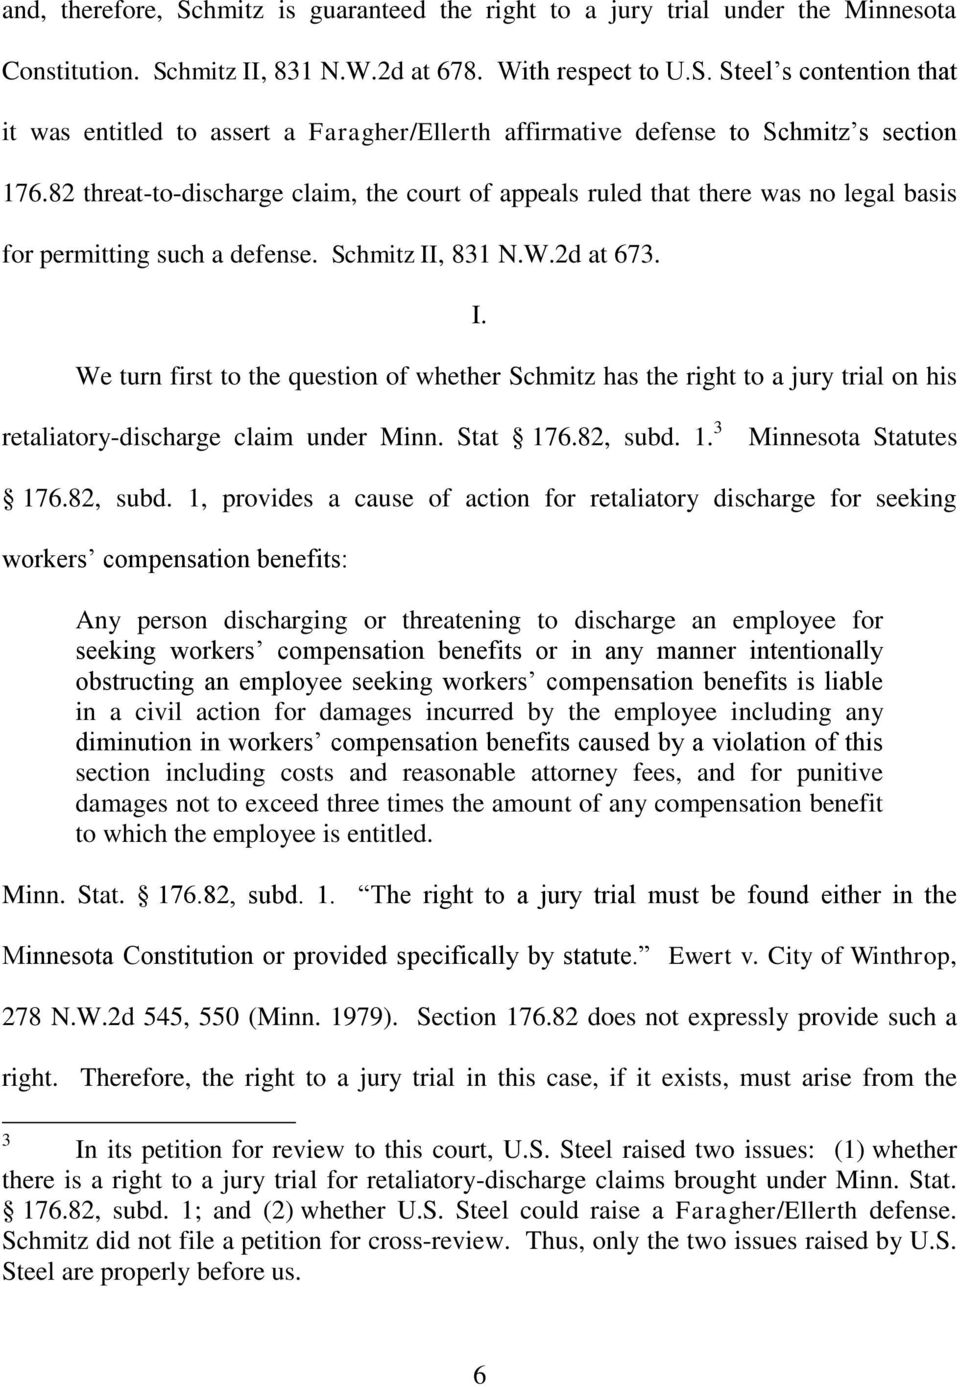 , 831 N.W.2d at 673. I. We turn first to the question of whether Schmitz has the right to a jury trial on his retaliatory-discharge claim under Minn. Stat 176.82, subd. 1. 3 Minnesota Statutes 176.